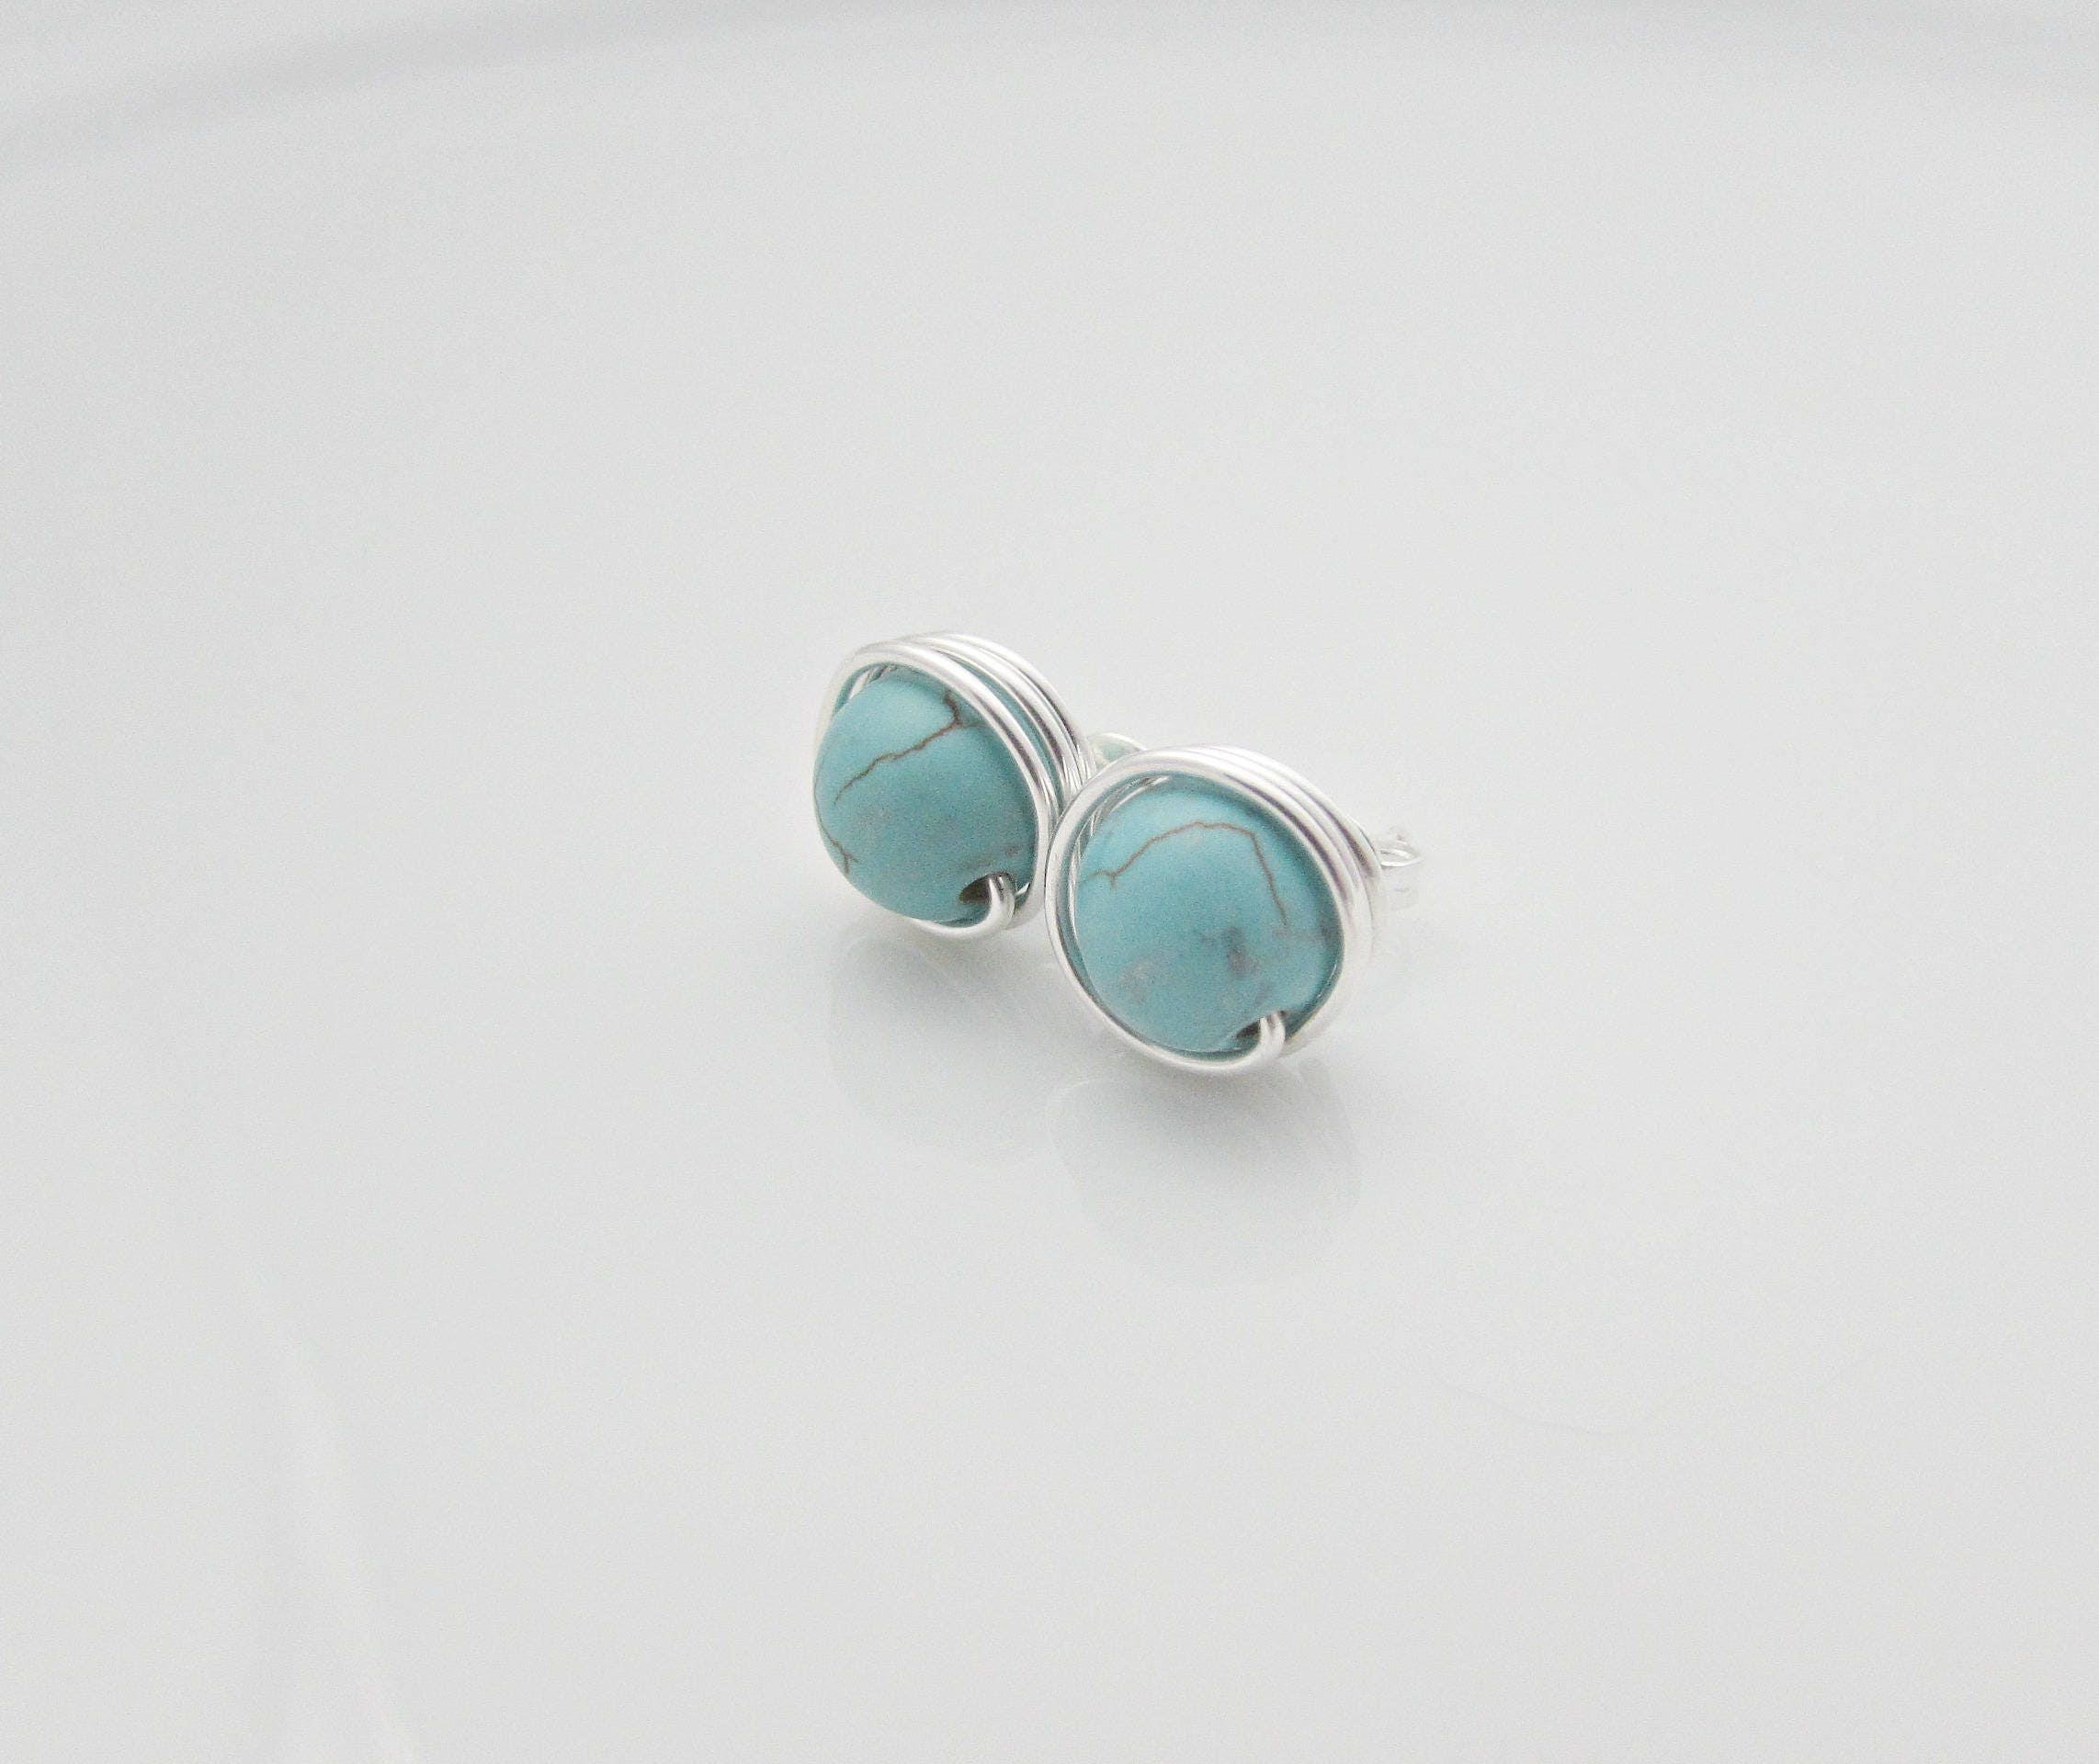 retail dsc marcia moran turquoise designer stud products earring crystal earrings discounts